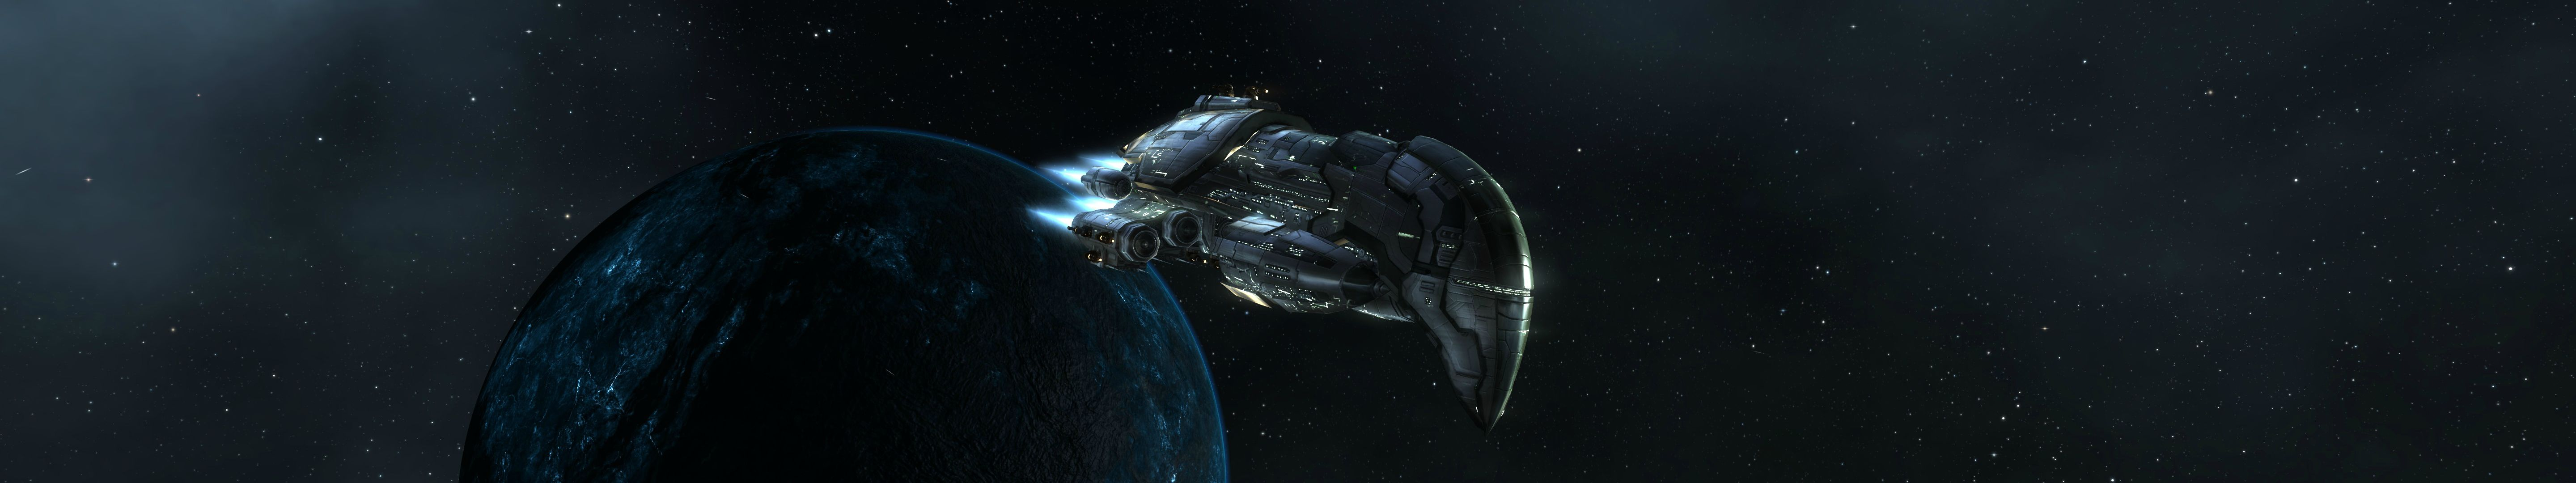 Spaceship Hd Wallpaper Background Image 5760x1080 Id 442709 Wallpaper Abyss